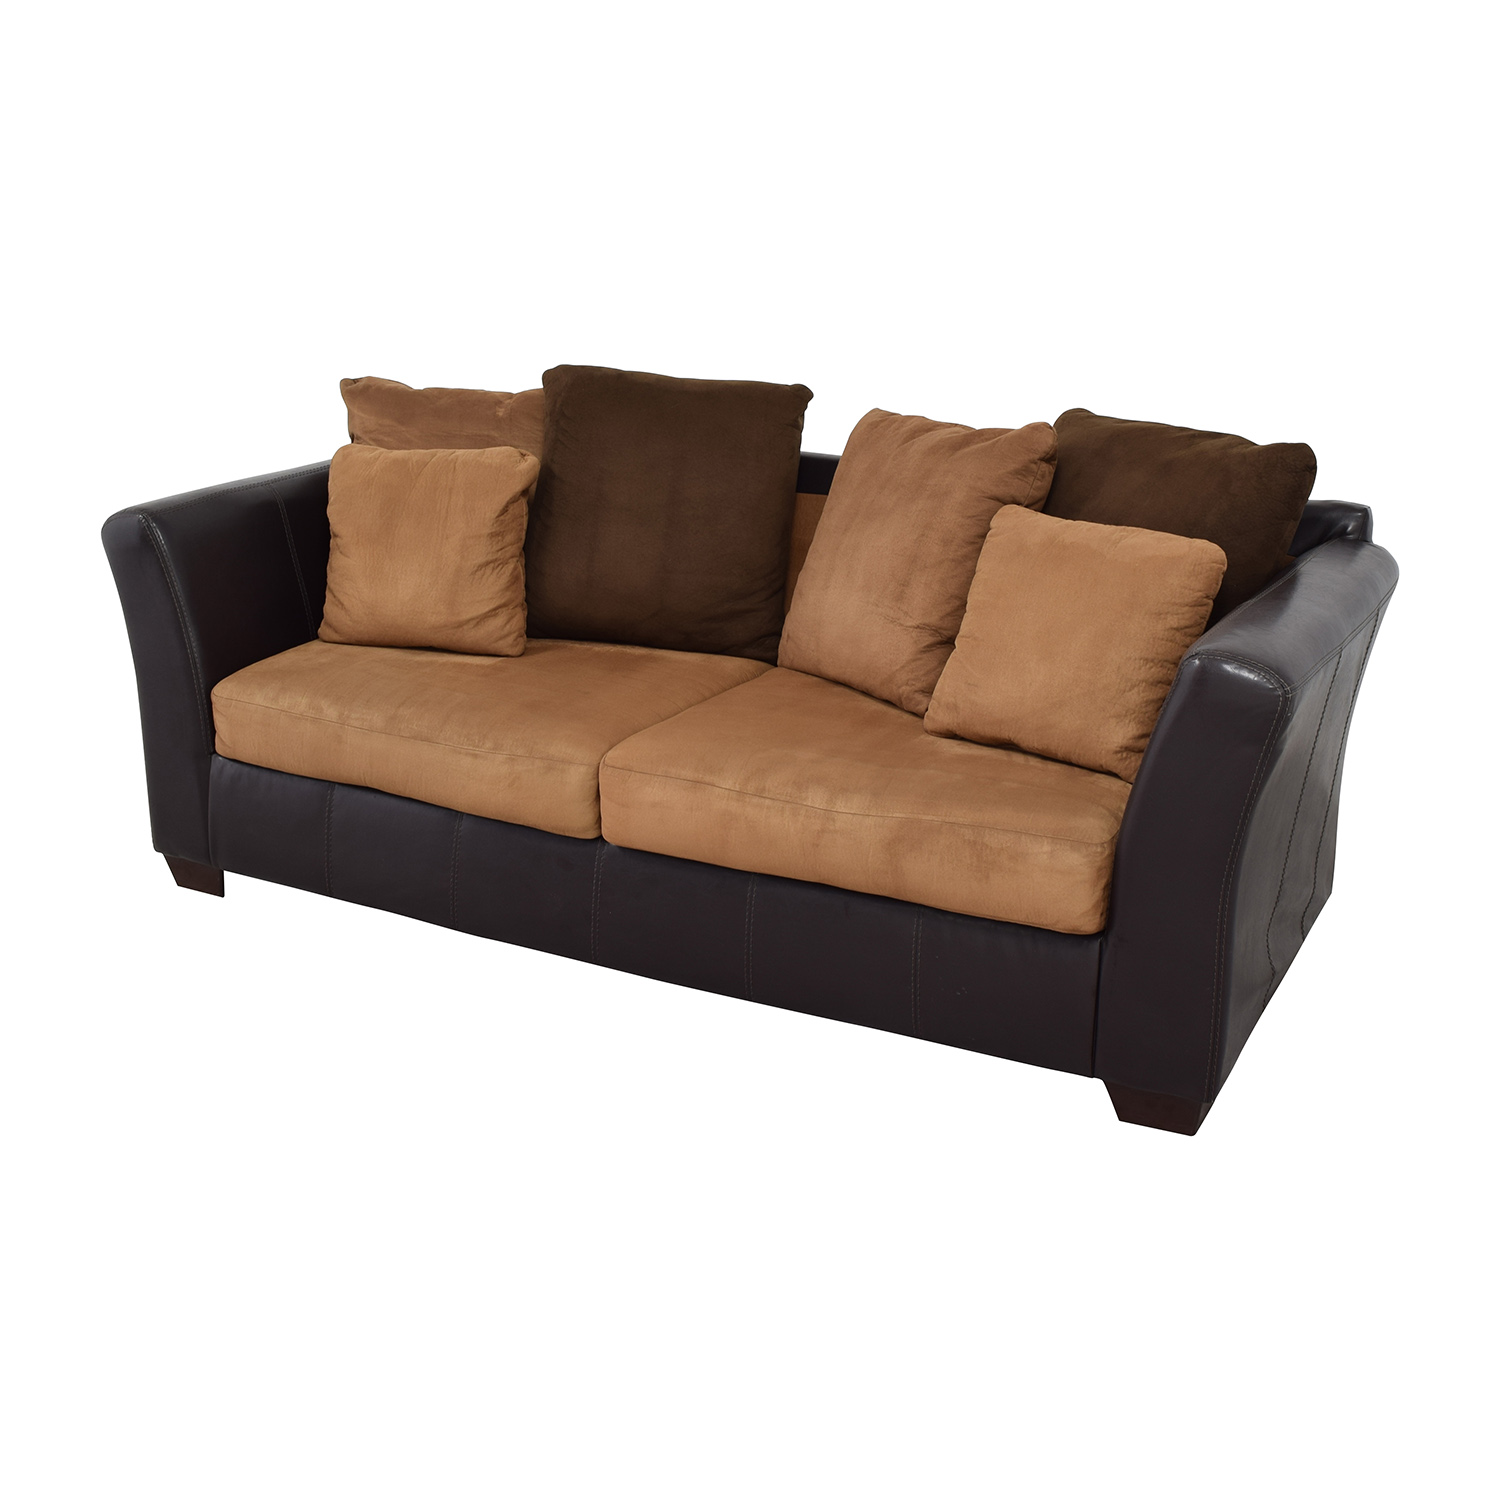 Ashley Furniture Ashley Furniture Sofa with Brown Throw Pillows discount